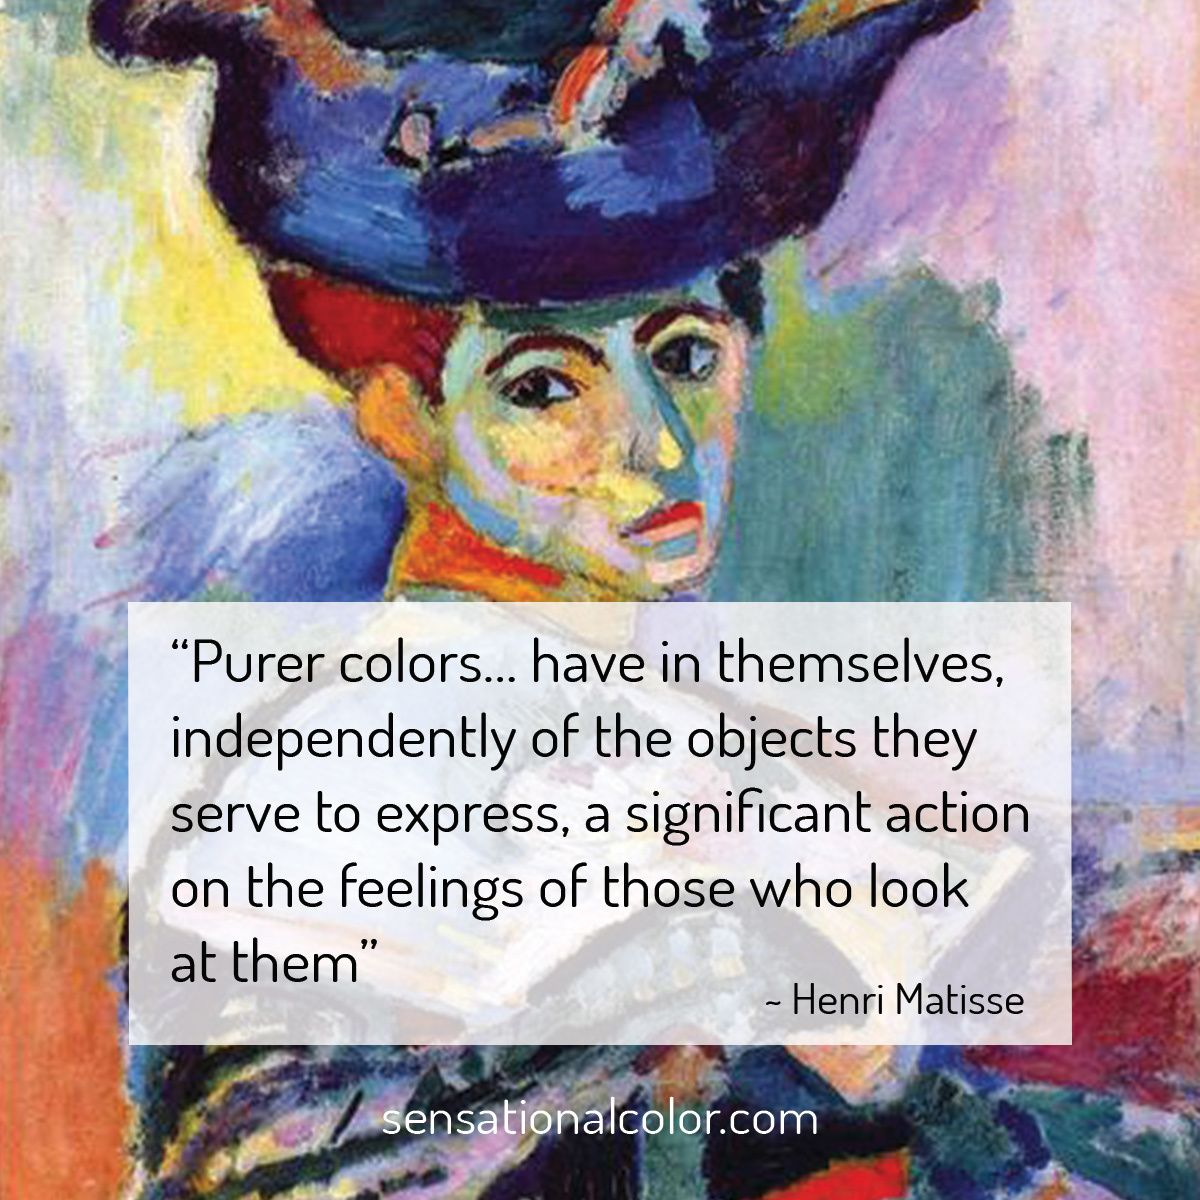 """Purer colors… have in themselves, independently of the objects they serve to express, a significant action on the feelings of those who look at them.""  - Henri Matisse"